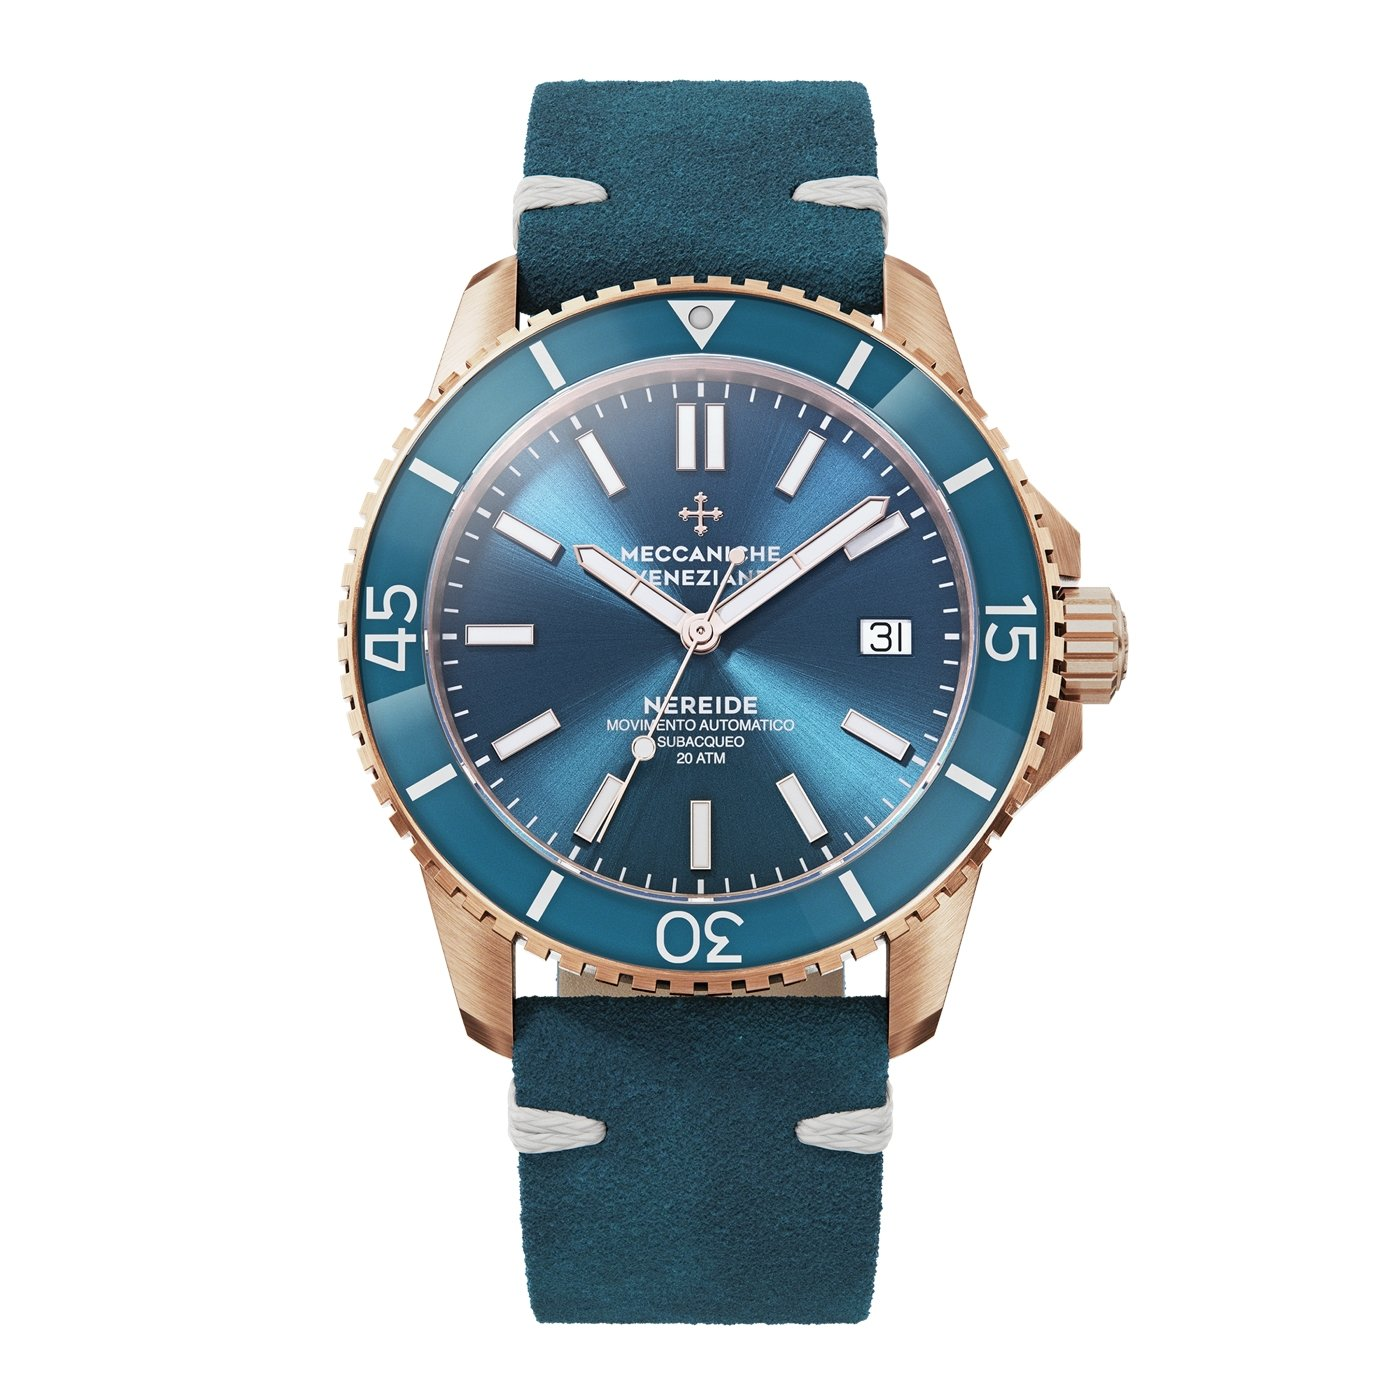 Meccaniche Veneziane Nereide 4.0 Diver Rose Gold PVD - Watches & Crystals